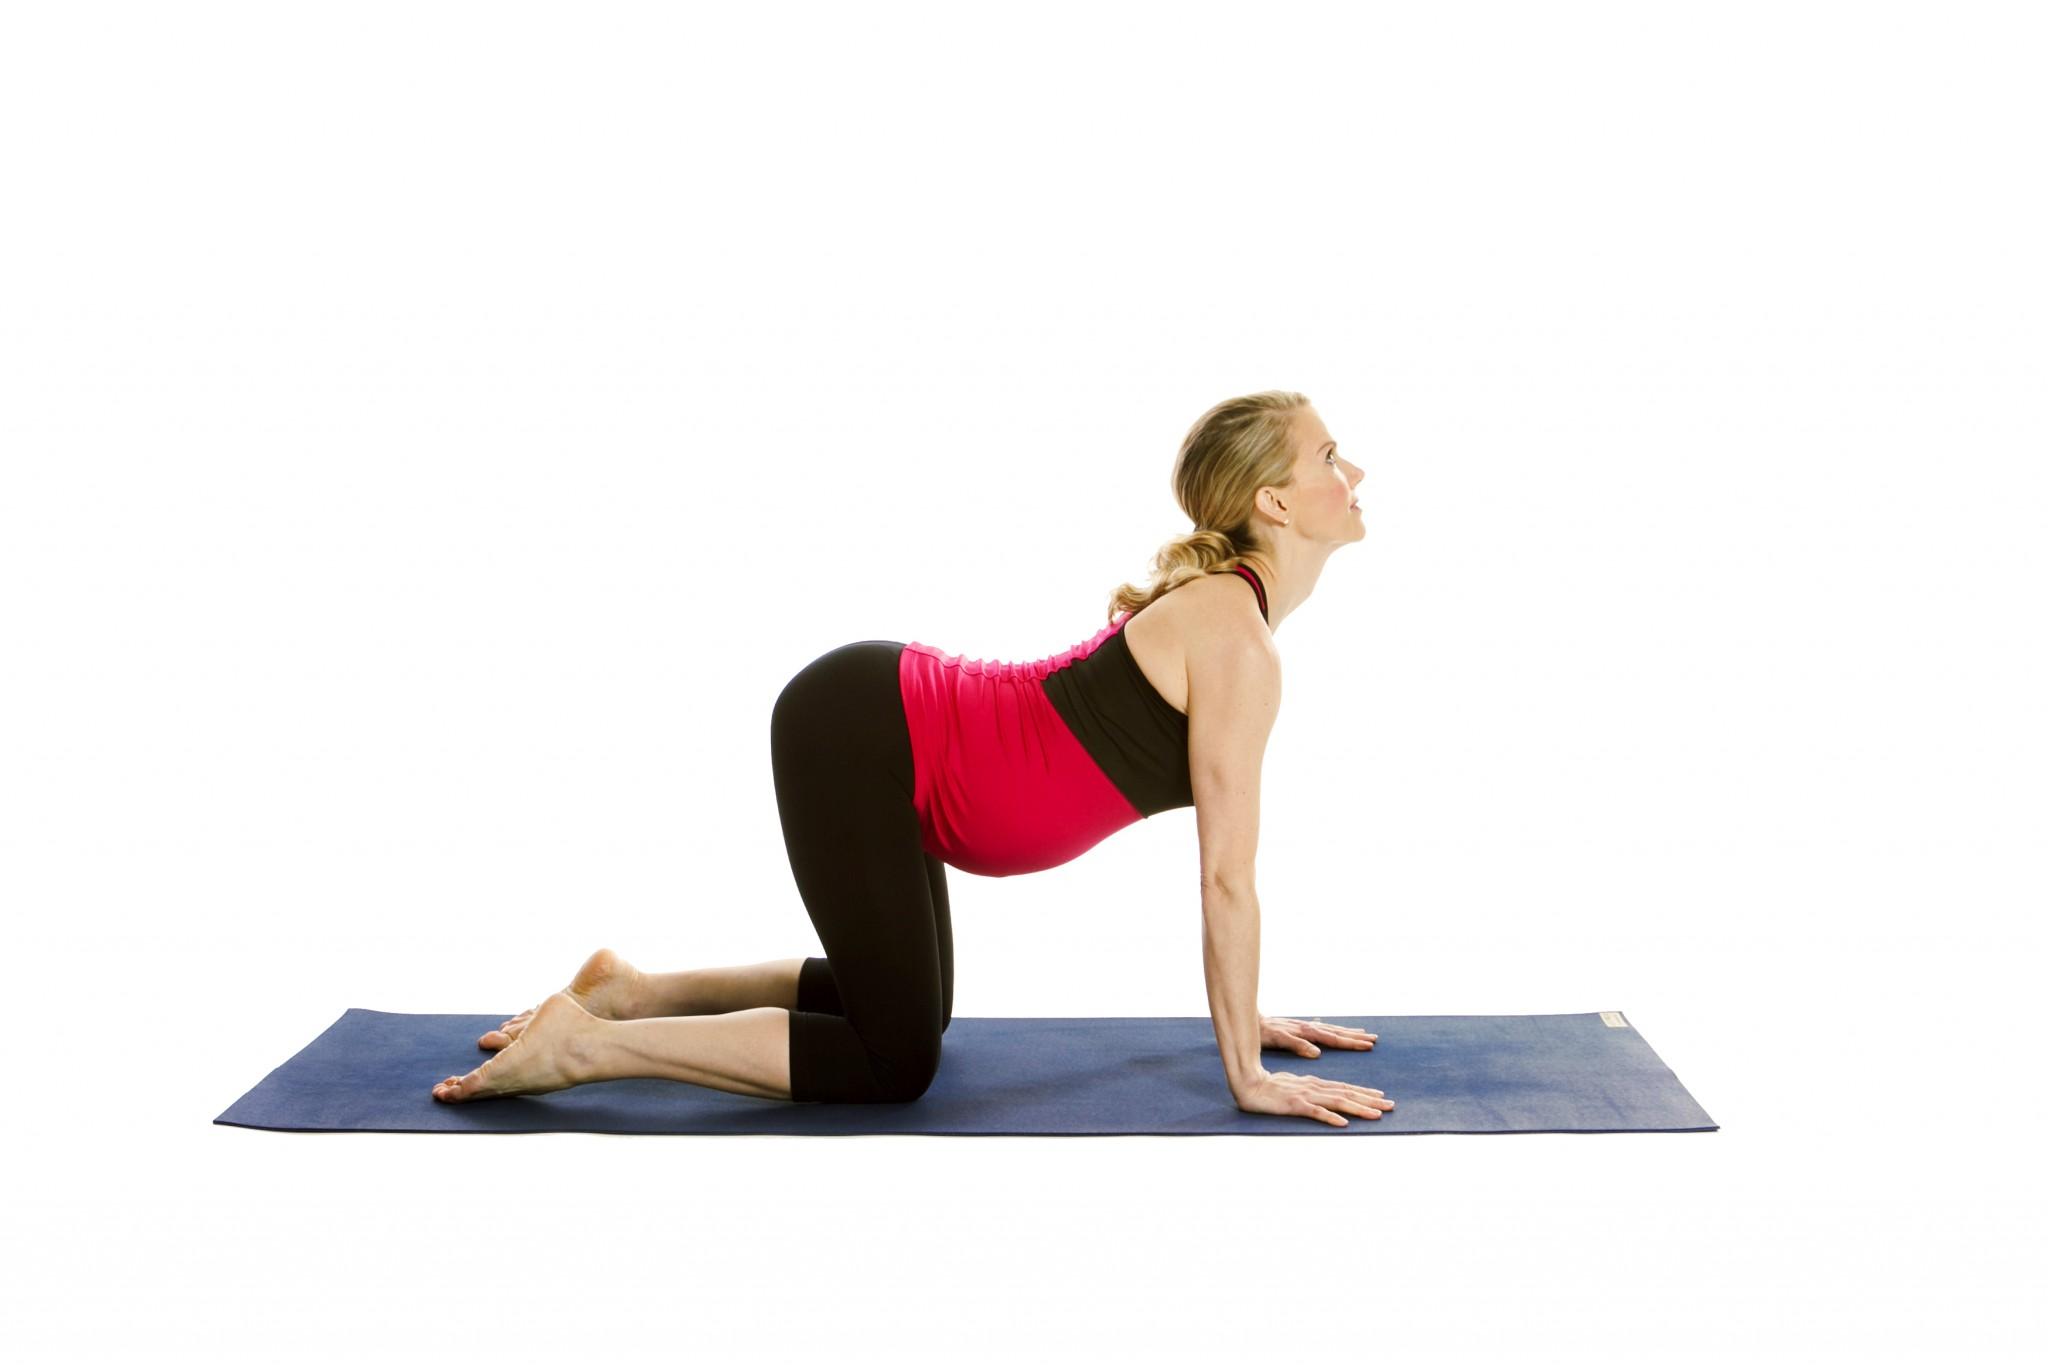 5. The Cat-Cow Poses - The Best Yoga Poses for Pregnant Women